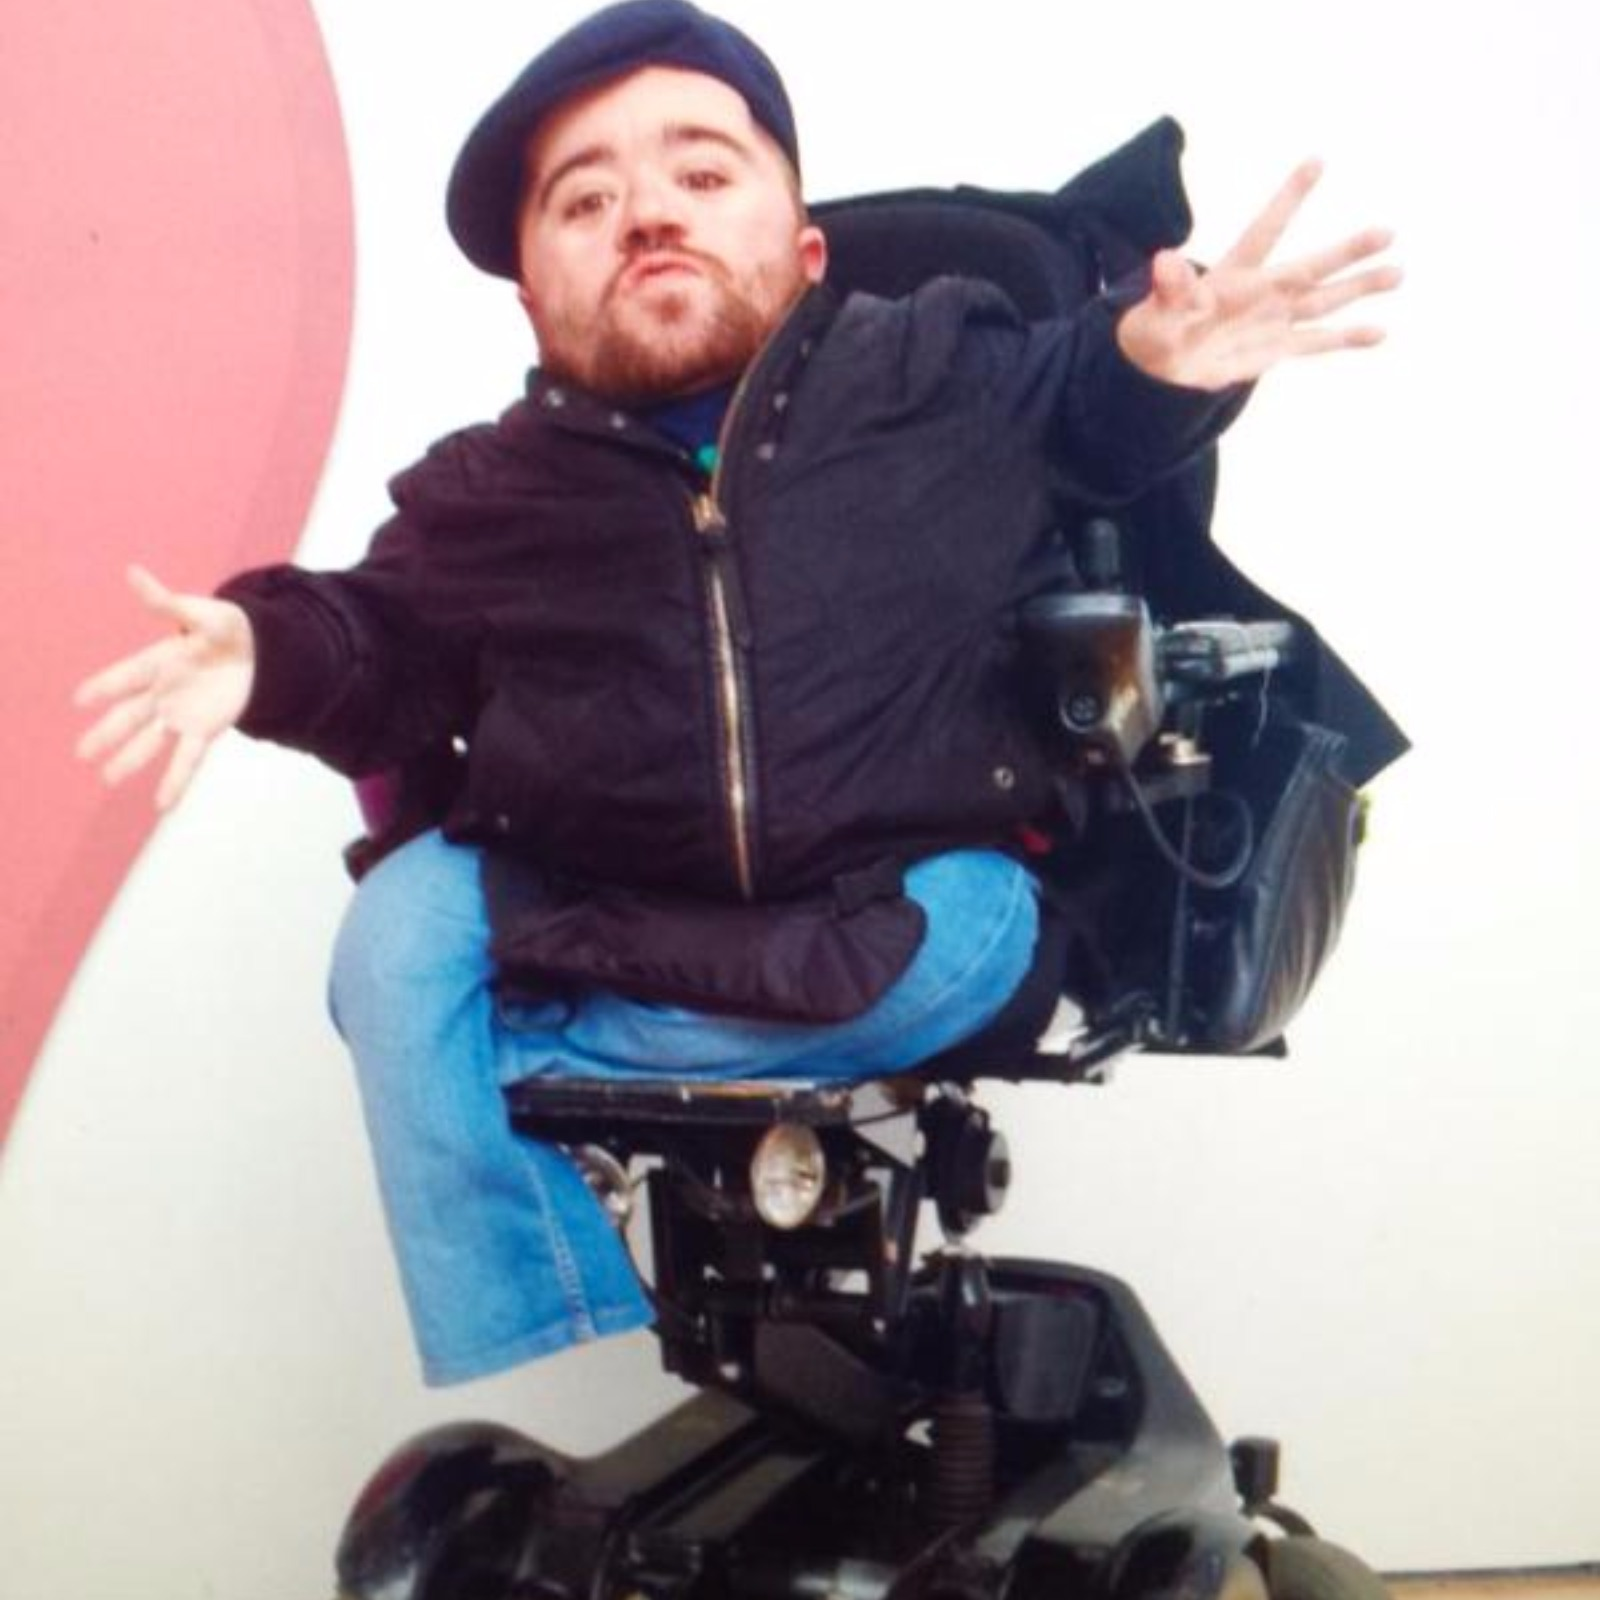 show topic getting around mobility scooter traveling with disabilities